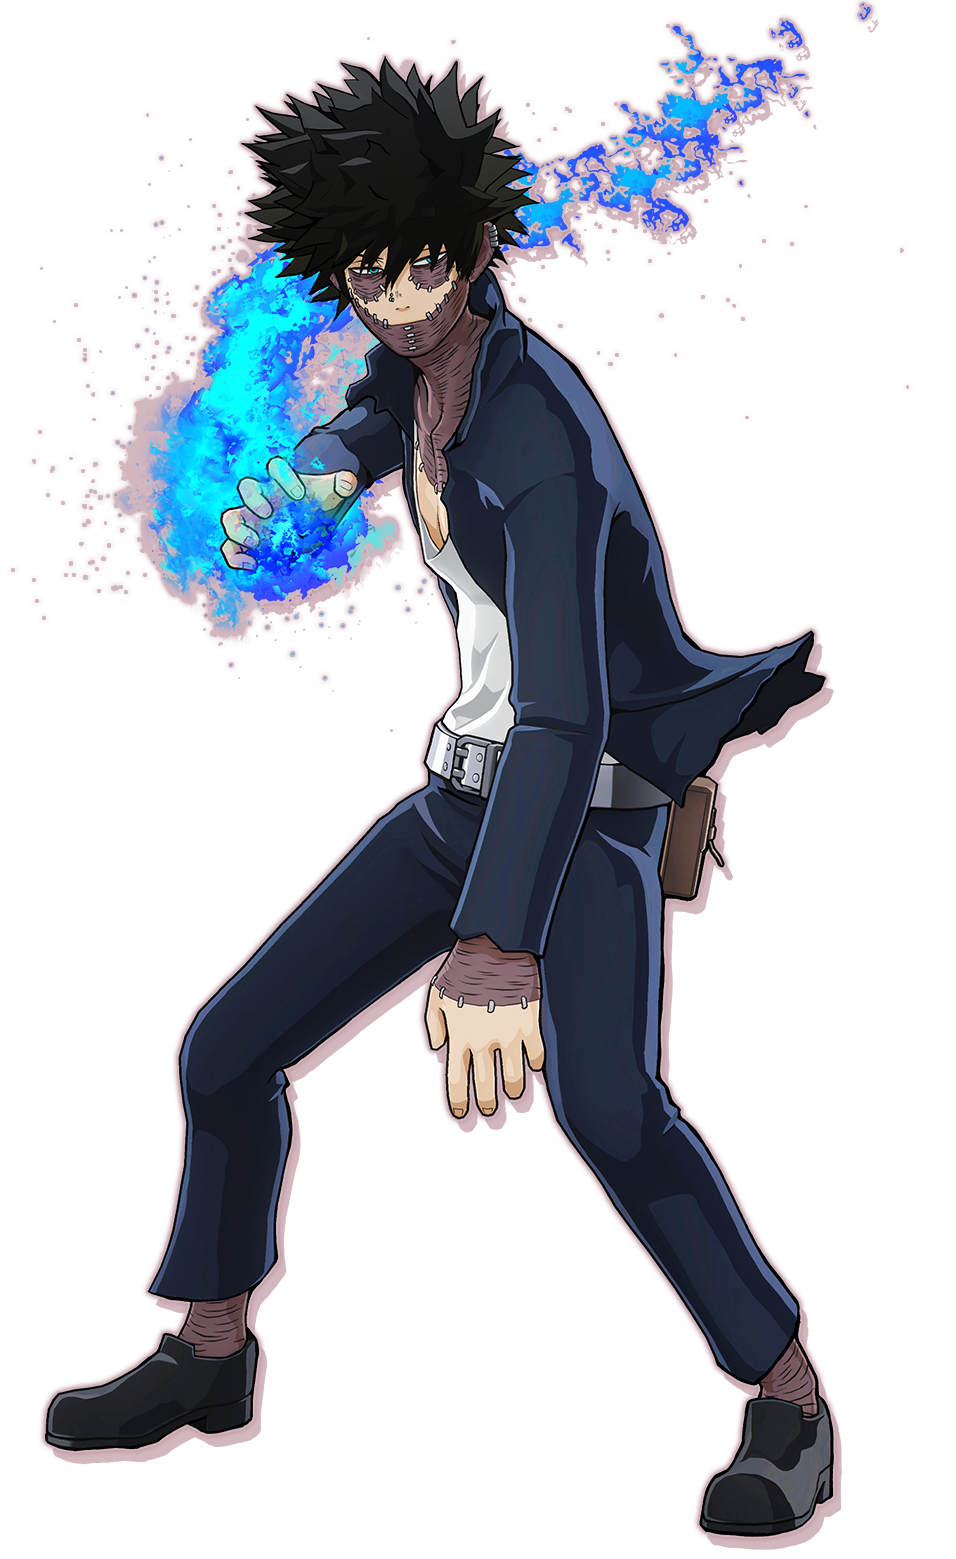 Dabi - Blueflame Render (My Hero One's Justice 1).png